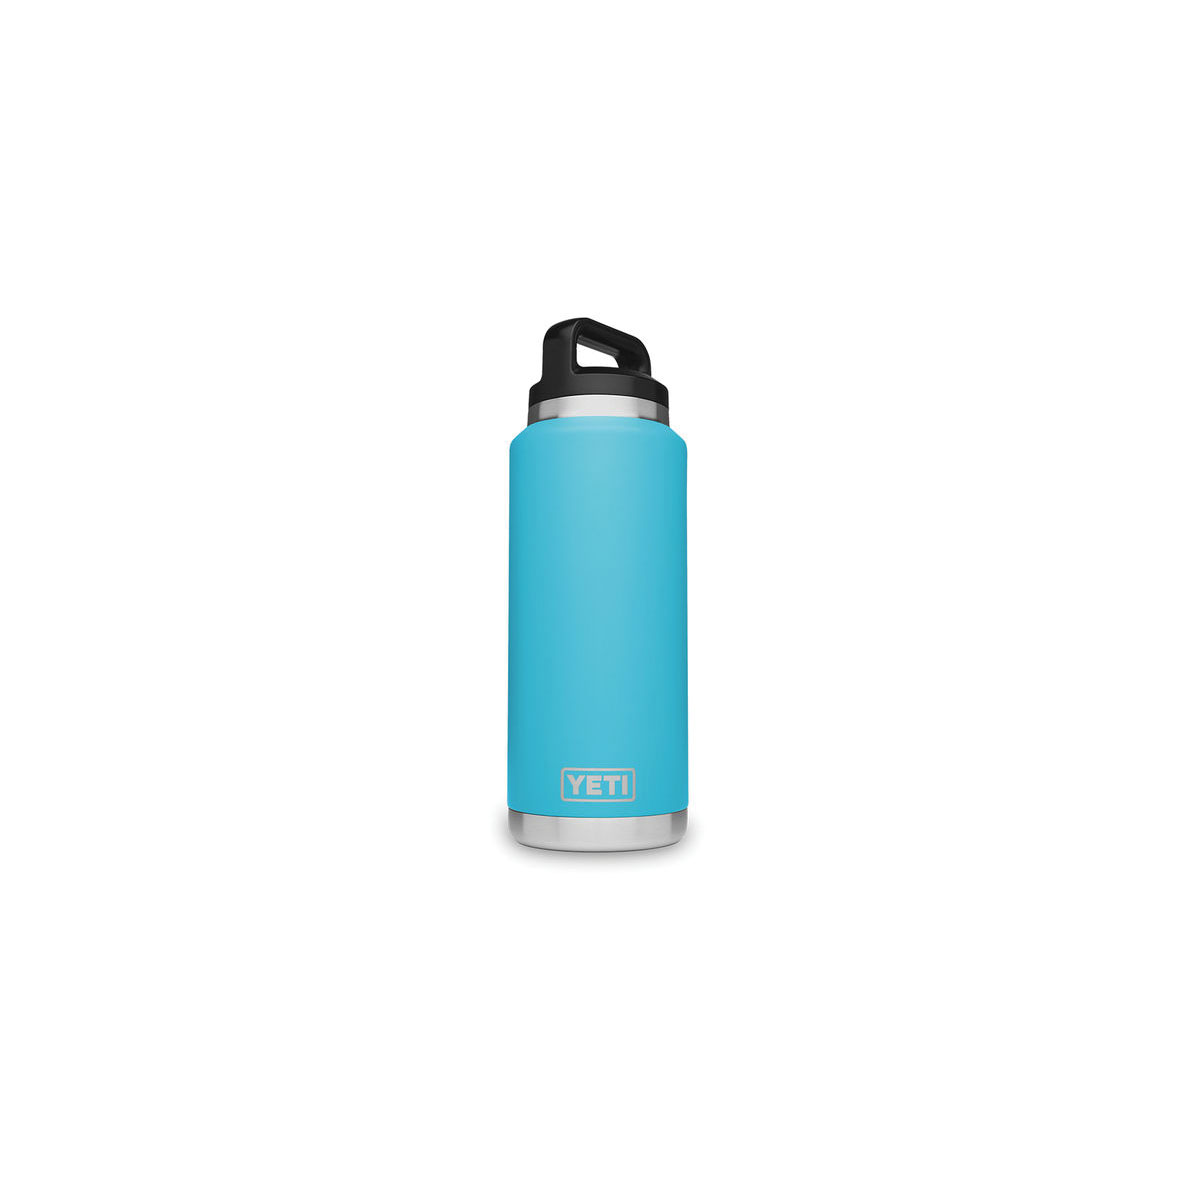 Picture of YETI Rambler 21071500115 Bottle with Chug Cap, 36 oz Capacity, Stainless Steel, Reef Blue